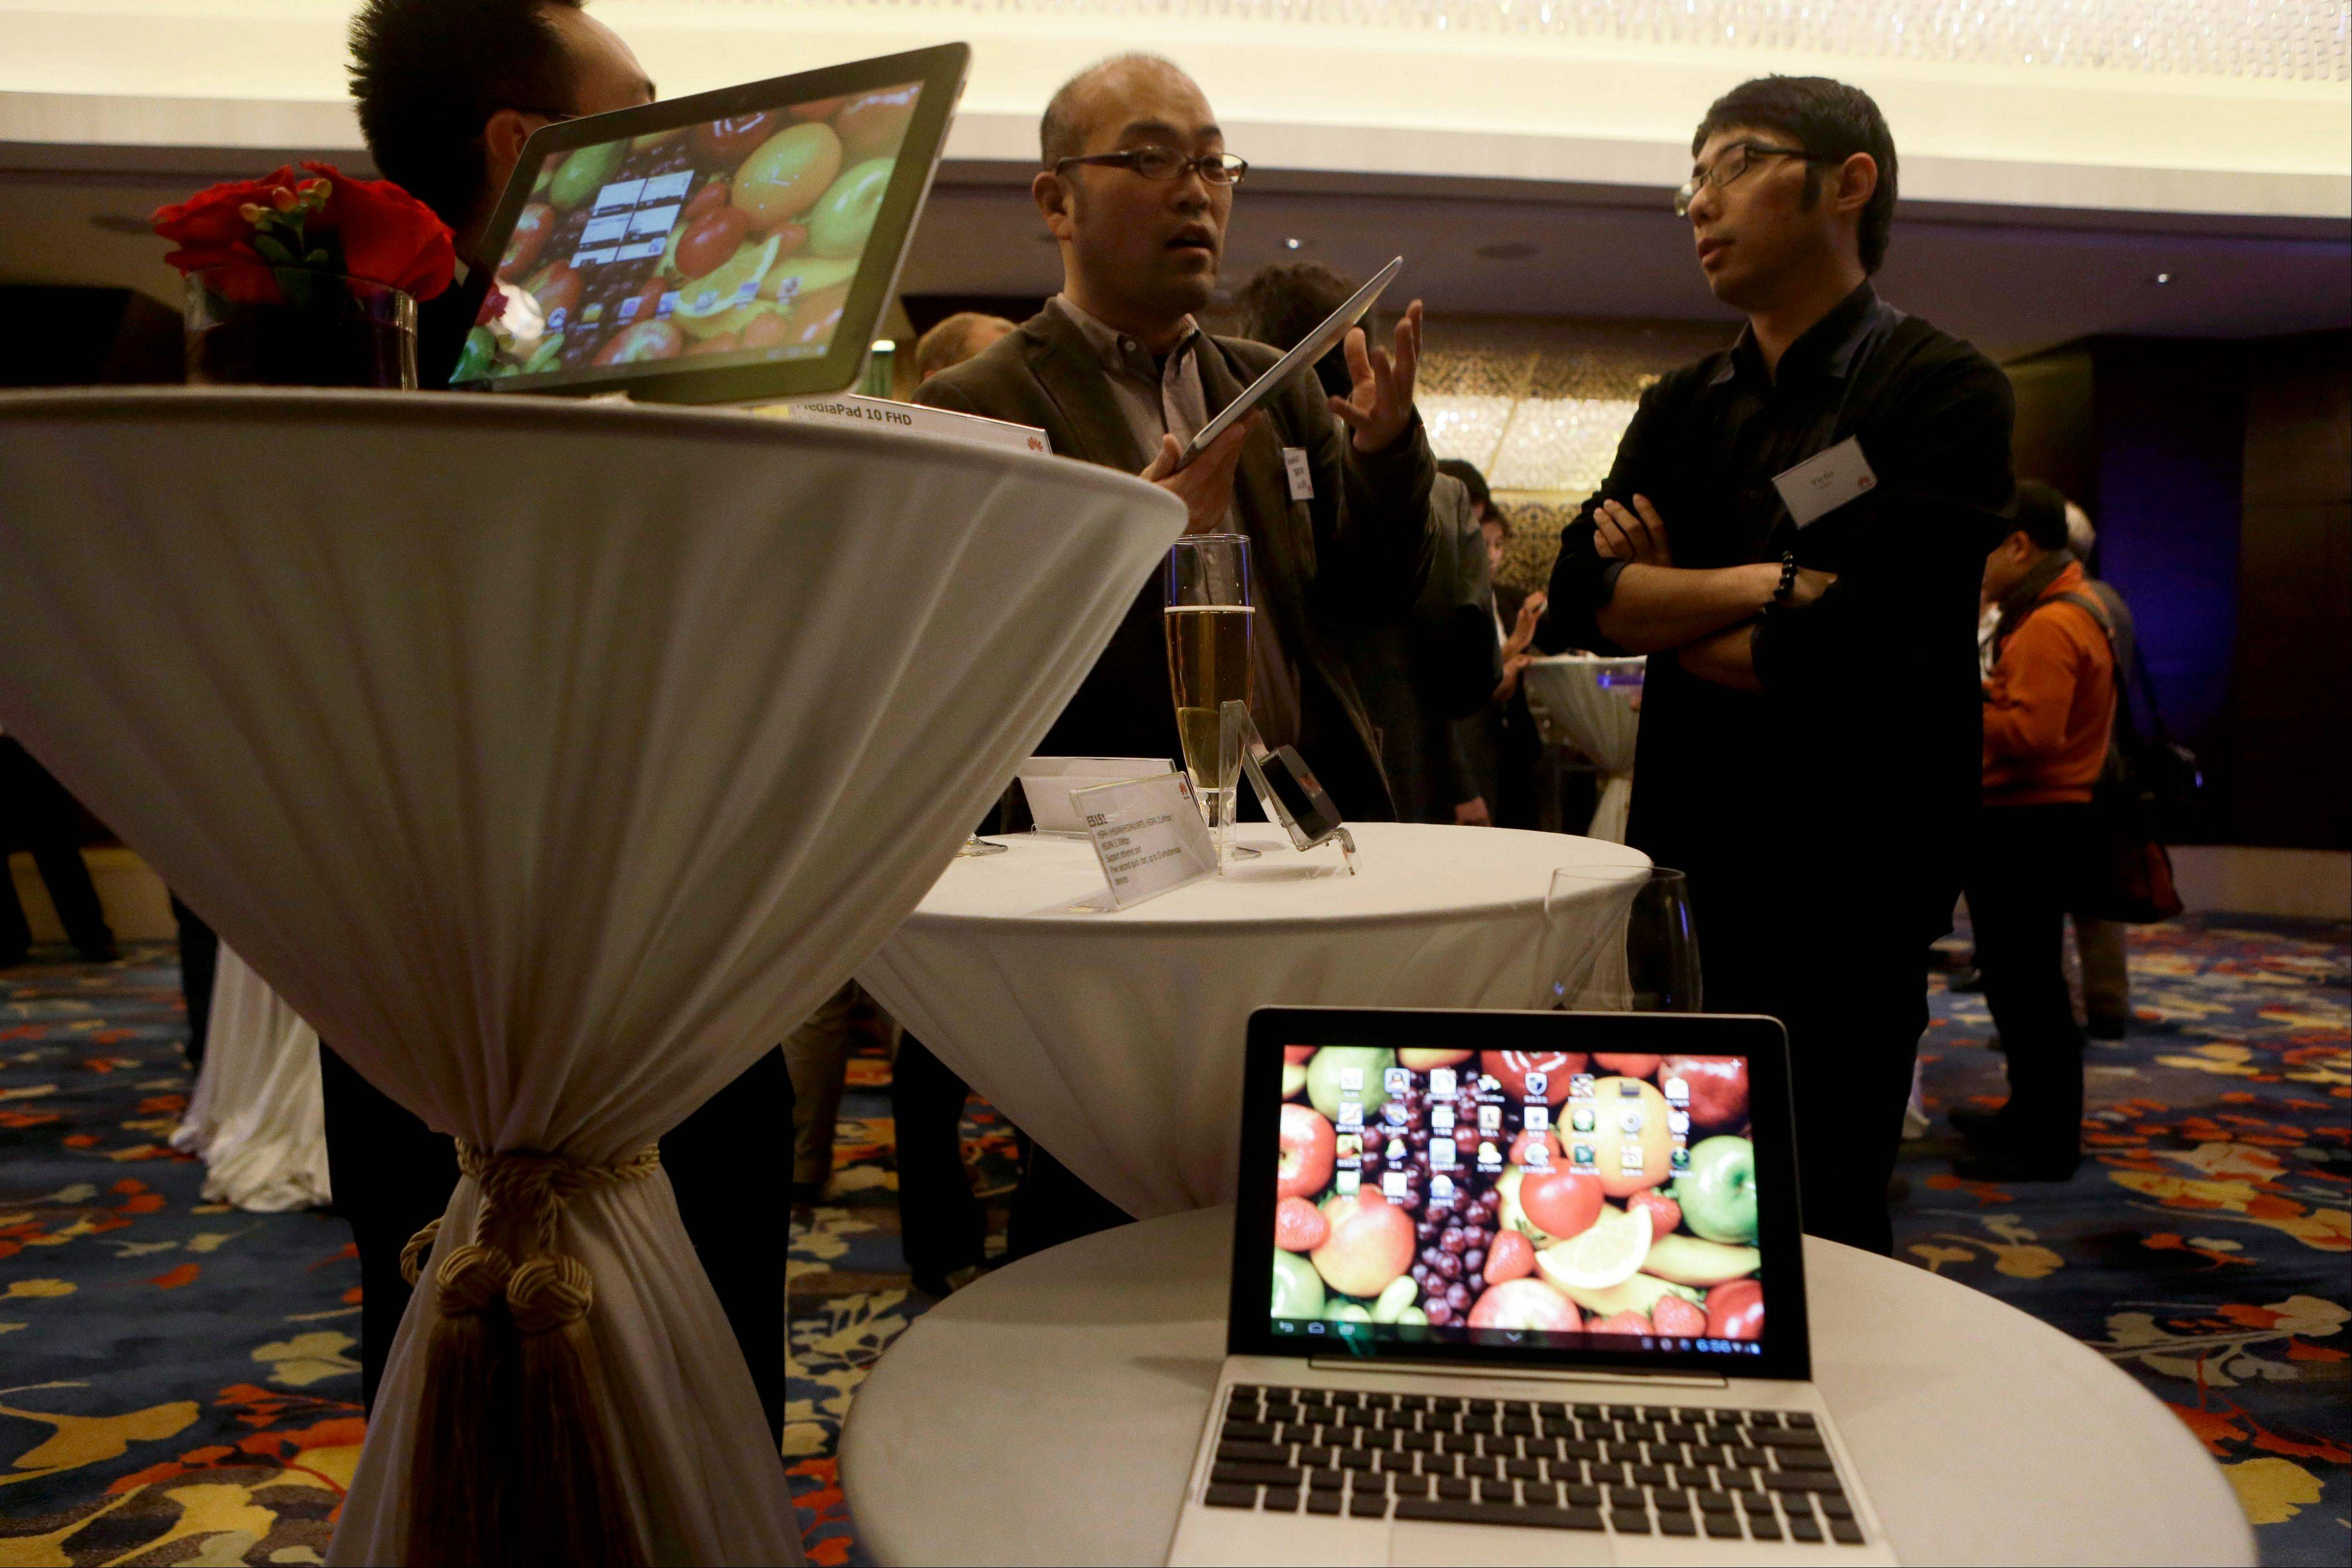 Huawei staff member, right, talks to journalists near laptops and tablets manufactured by Huawei during a media event at a hotel in Beijing .